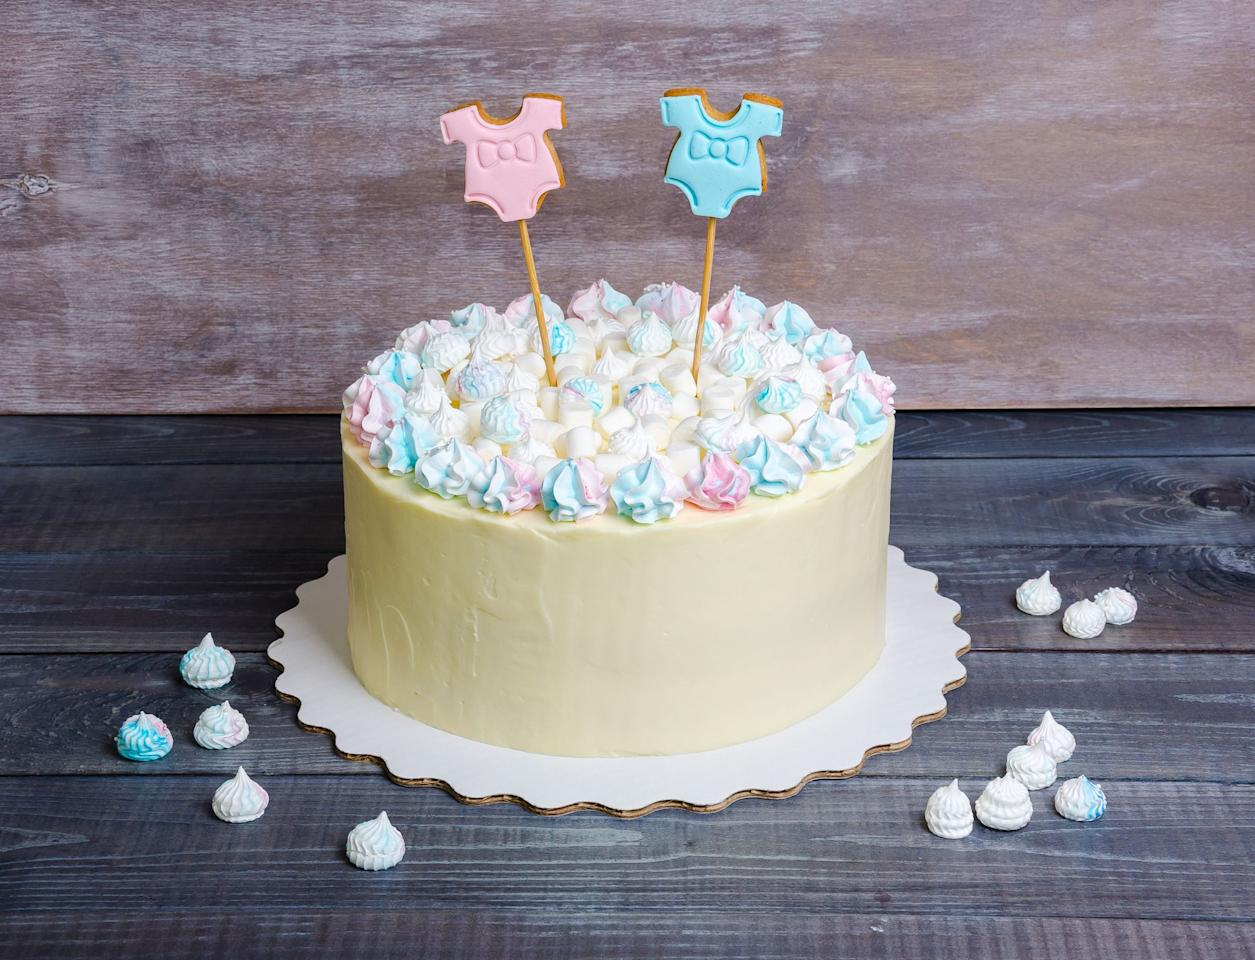 """<p>For many parents-to-be, learning the sex of their unborn baby is a magical, once-in-a-lifetime moment. Gender reveal parties can make that moment even more special by getting friends and family in on the surprise in a festive setting.  </p><p>There are no rules when it comes to <a href=""""https://www.countryliving.com/life/a42635/faith-hill-tim-mcgraw-gender-reveal/"""">gender reveals</a>, so you can feel free to play around with different ways to announce the news, as well as different party games and themes. If you're a sports fan, you can dunk, kick, or throw a ball filled with pink or blue powder to declare your baby's sex. If you're a Potterhead, let the infamous Sorting Hat make the big reveal. Or, if you're not into the whole pink and blue color motif, consider a black and yellow """"What Will It Bee?"""" theme. Even if you're not up for throwing a party, you can still share the big news with friends and family in a fun, creative way by planning a gender reveal photoshoot.  </p><p>Gender reveals have become more popular than ever in recent years, but you may still be wondering where to start. That's why we rounded up some of the best shoppable and DIY gender reveal party ideas out there—from colorful piñatas to candy-filled cakes to Jackson Pollock-inspired paintings. Click through our gallery for plenty of inspiration! (Next up? Check out our best <a href=""""https://www.countryliving.com/home-maintenance/organization/advice/g1720/baby-room-decor/"""">baby room ideas</a>!)</p>"""